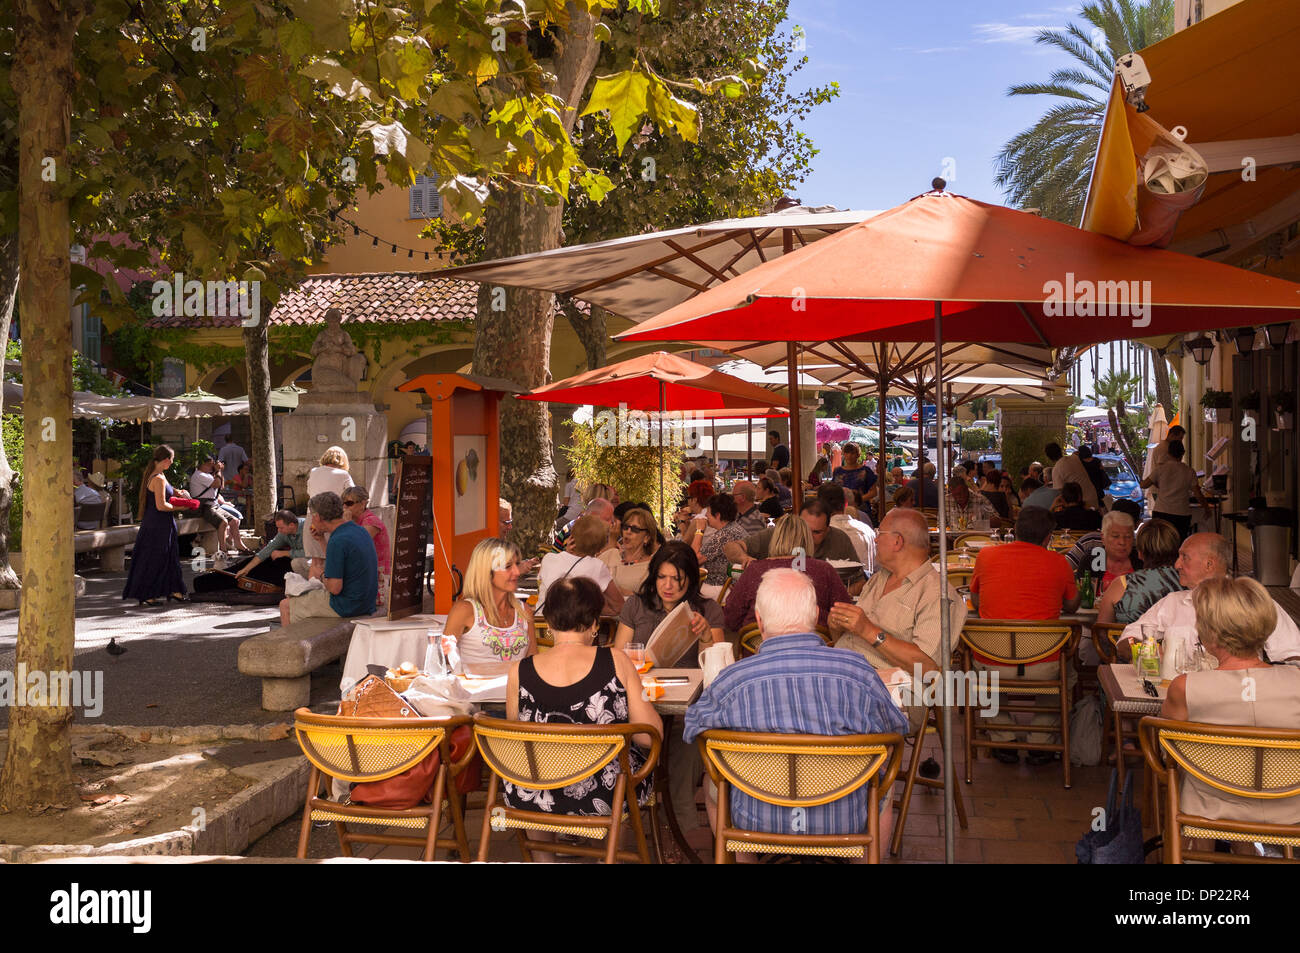 Restaurant in Menton on the Cote d'Azure France - Stock Image